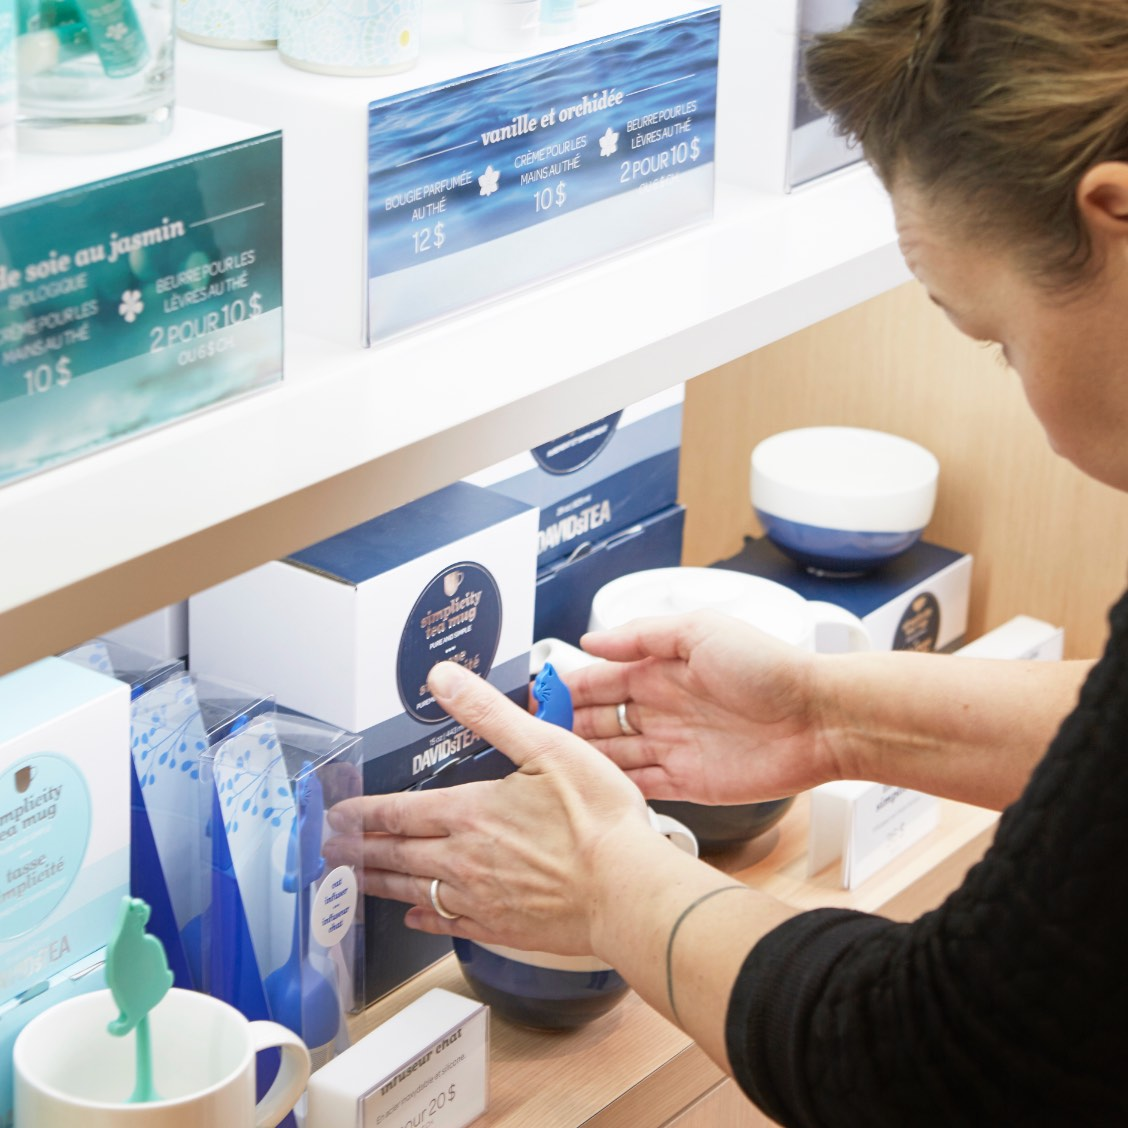 An employee arranges items on a shelf inside a DAVIDsTEA store.